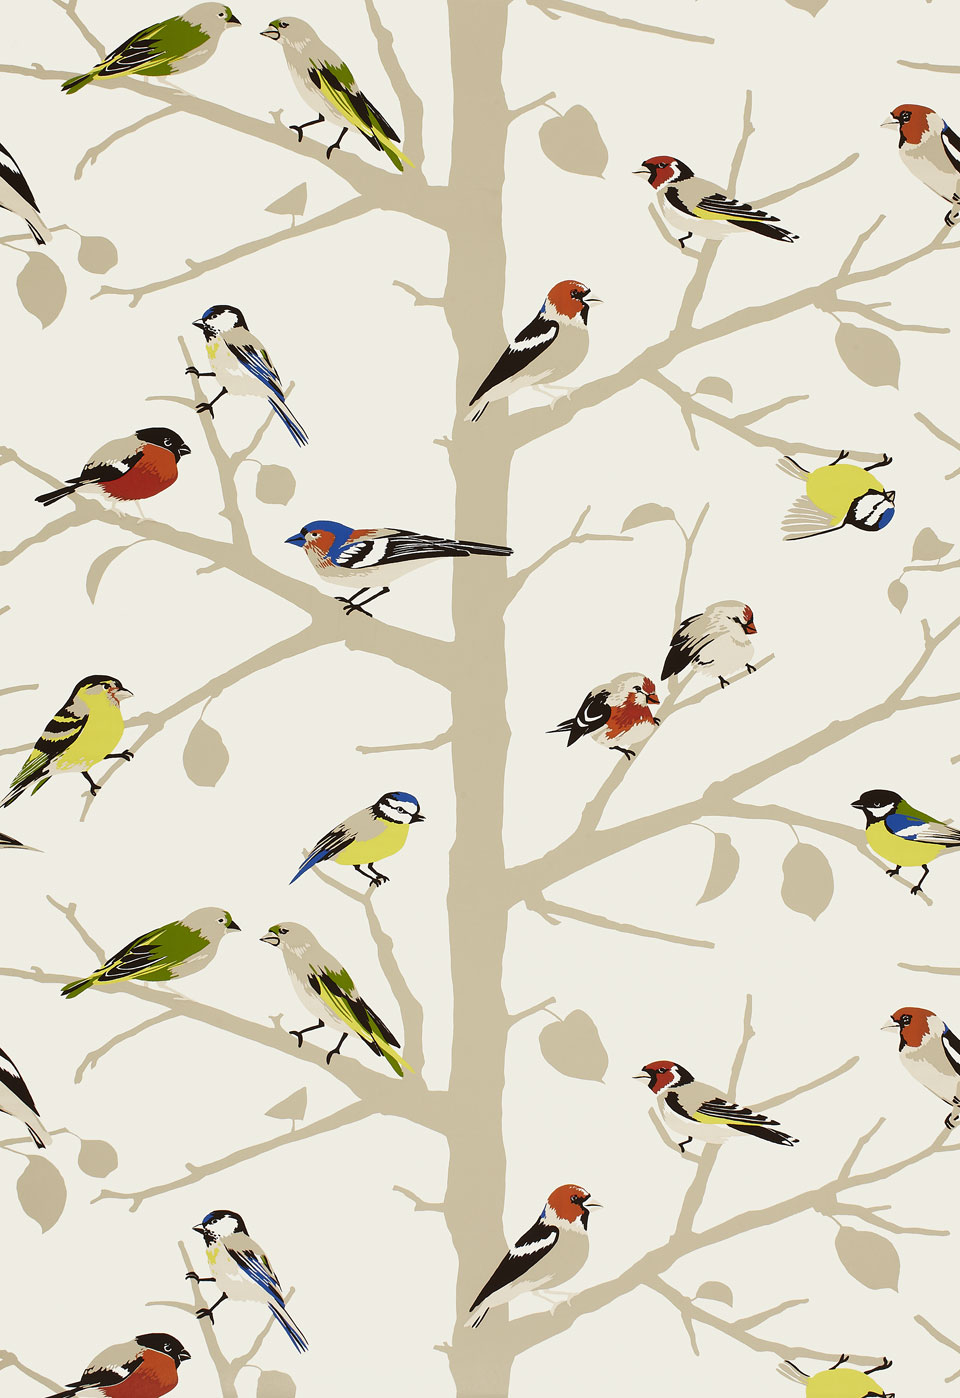 Black bird wallpaper pattern